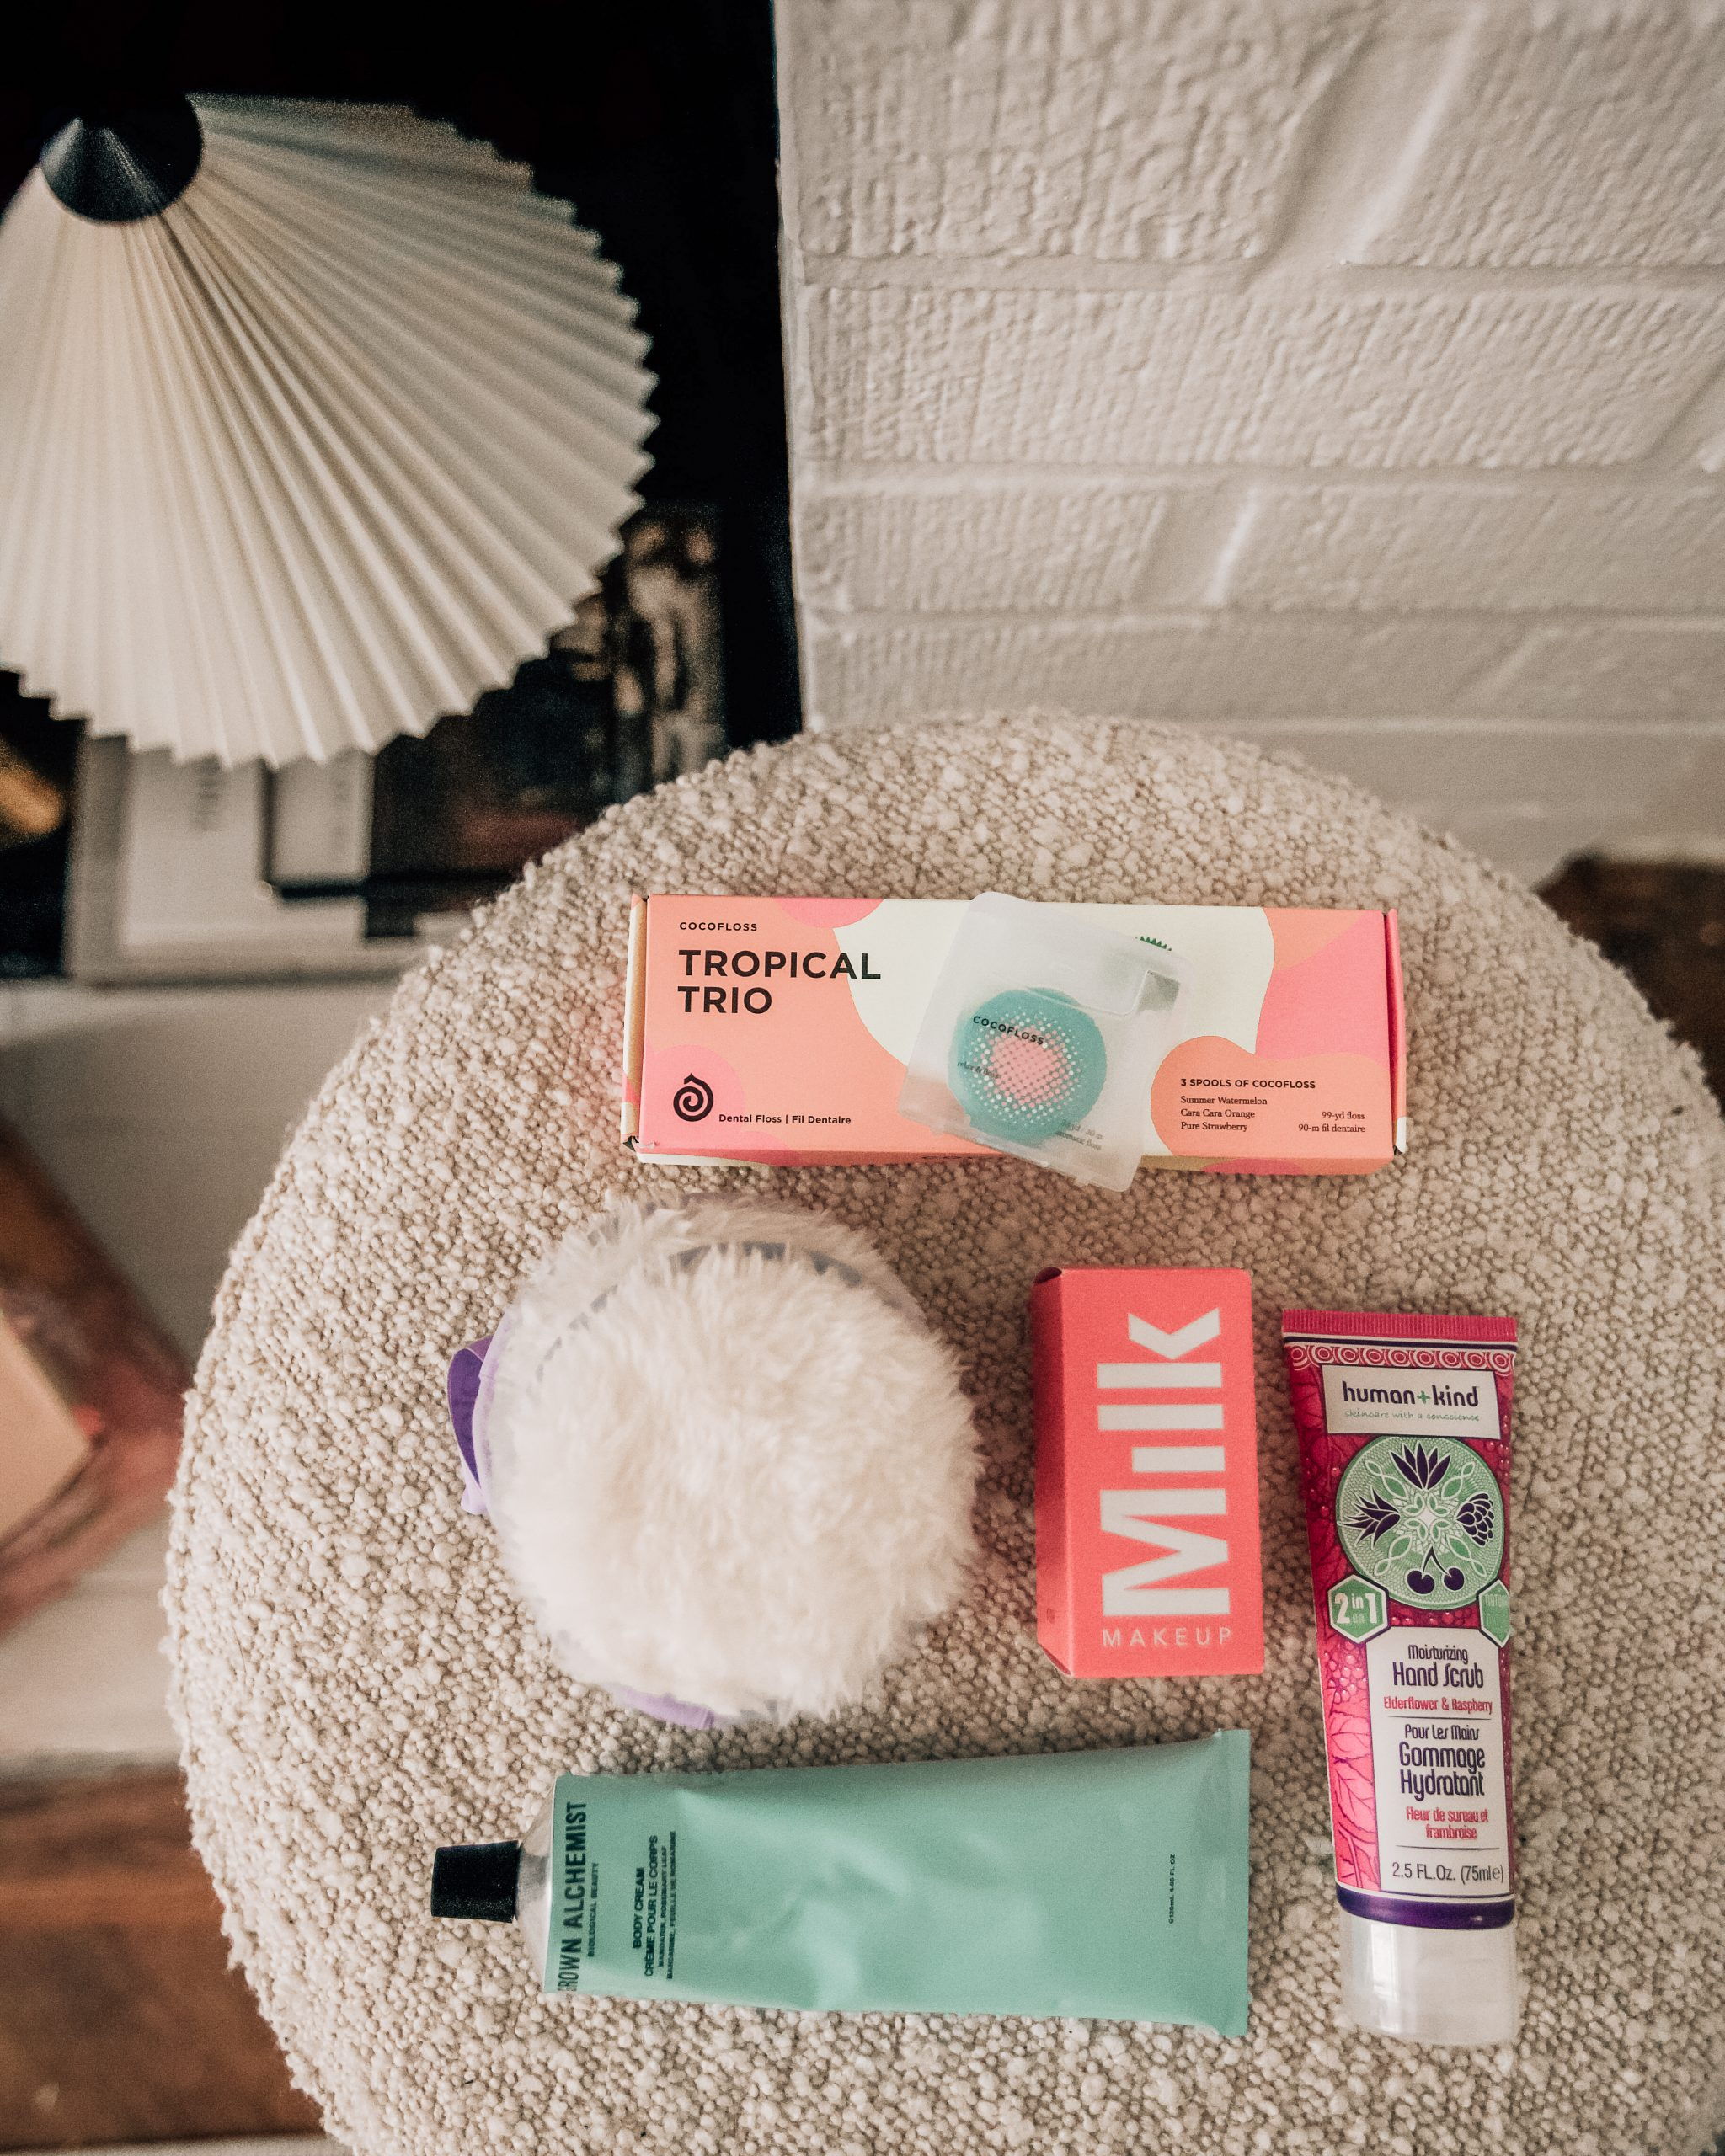 I Tried Out FabFitFun's Spring Box and Here's My Review